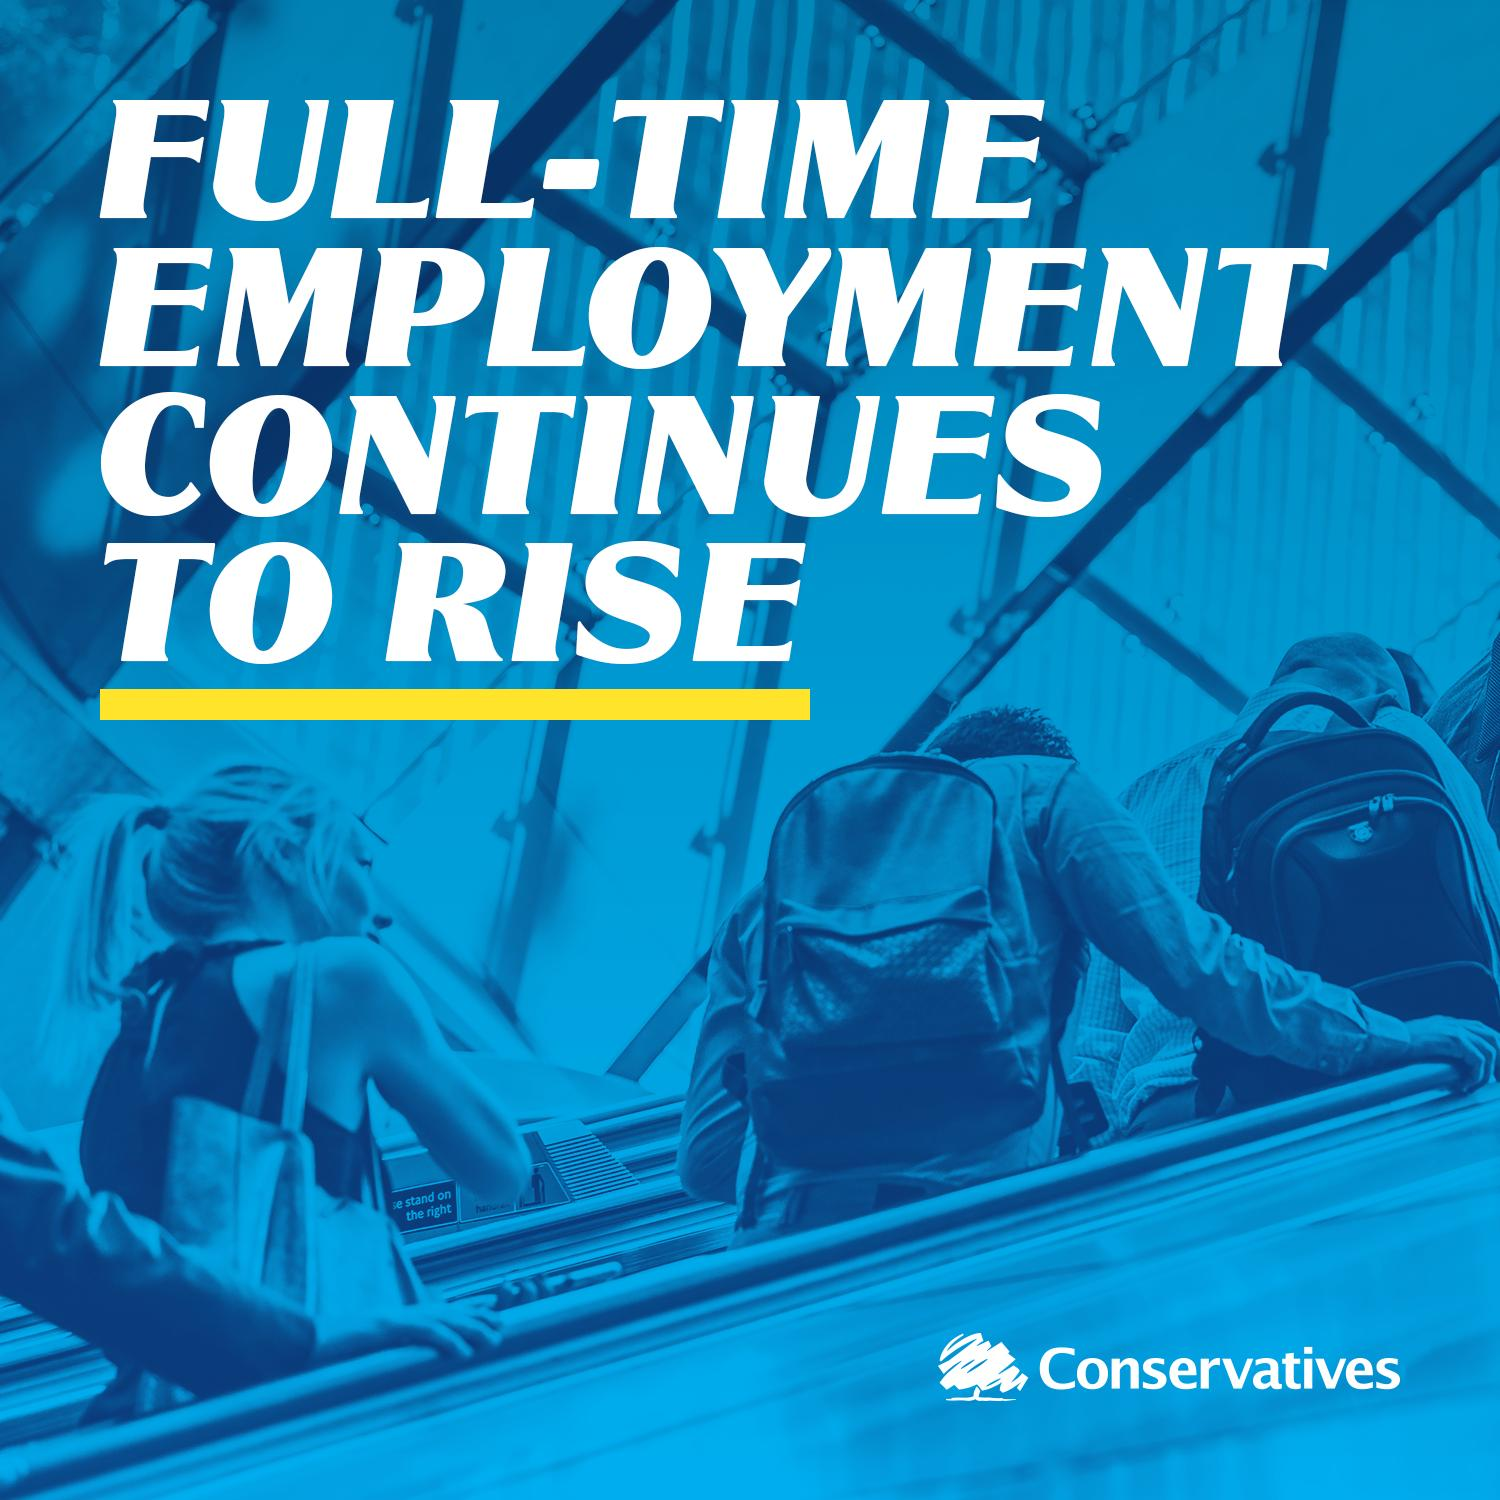 Full-time employment continues to rise - more than 300,000 new full-time jobs since last year